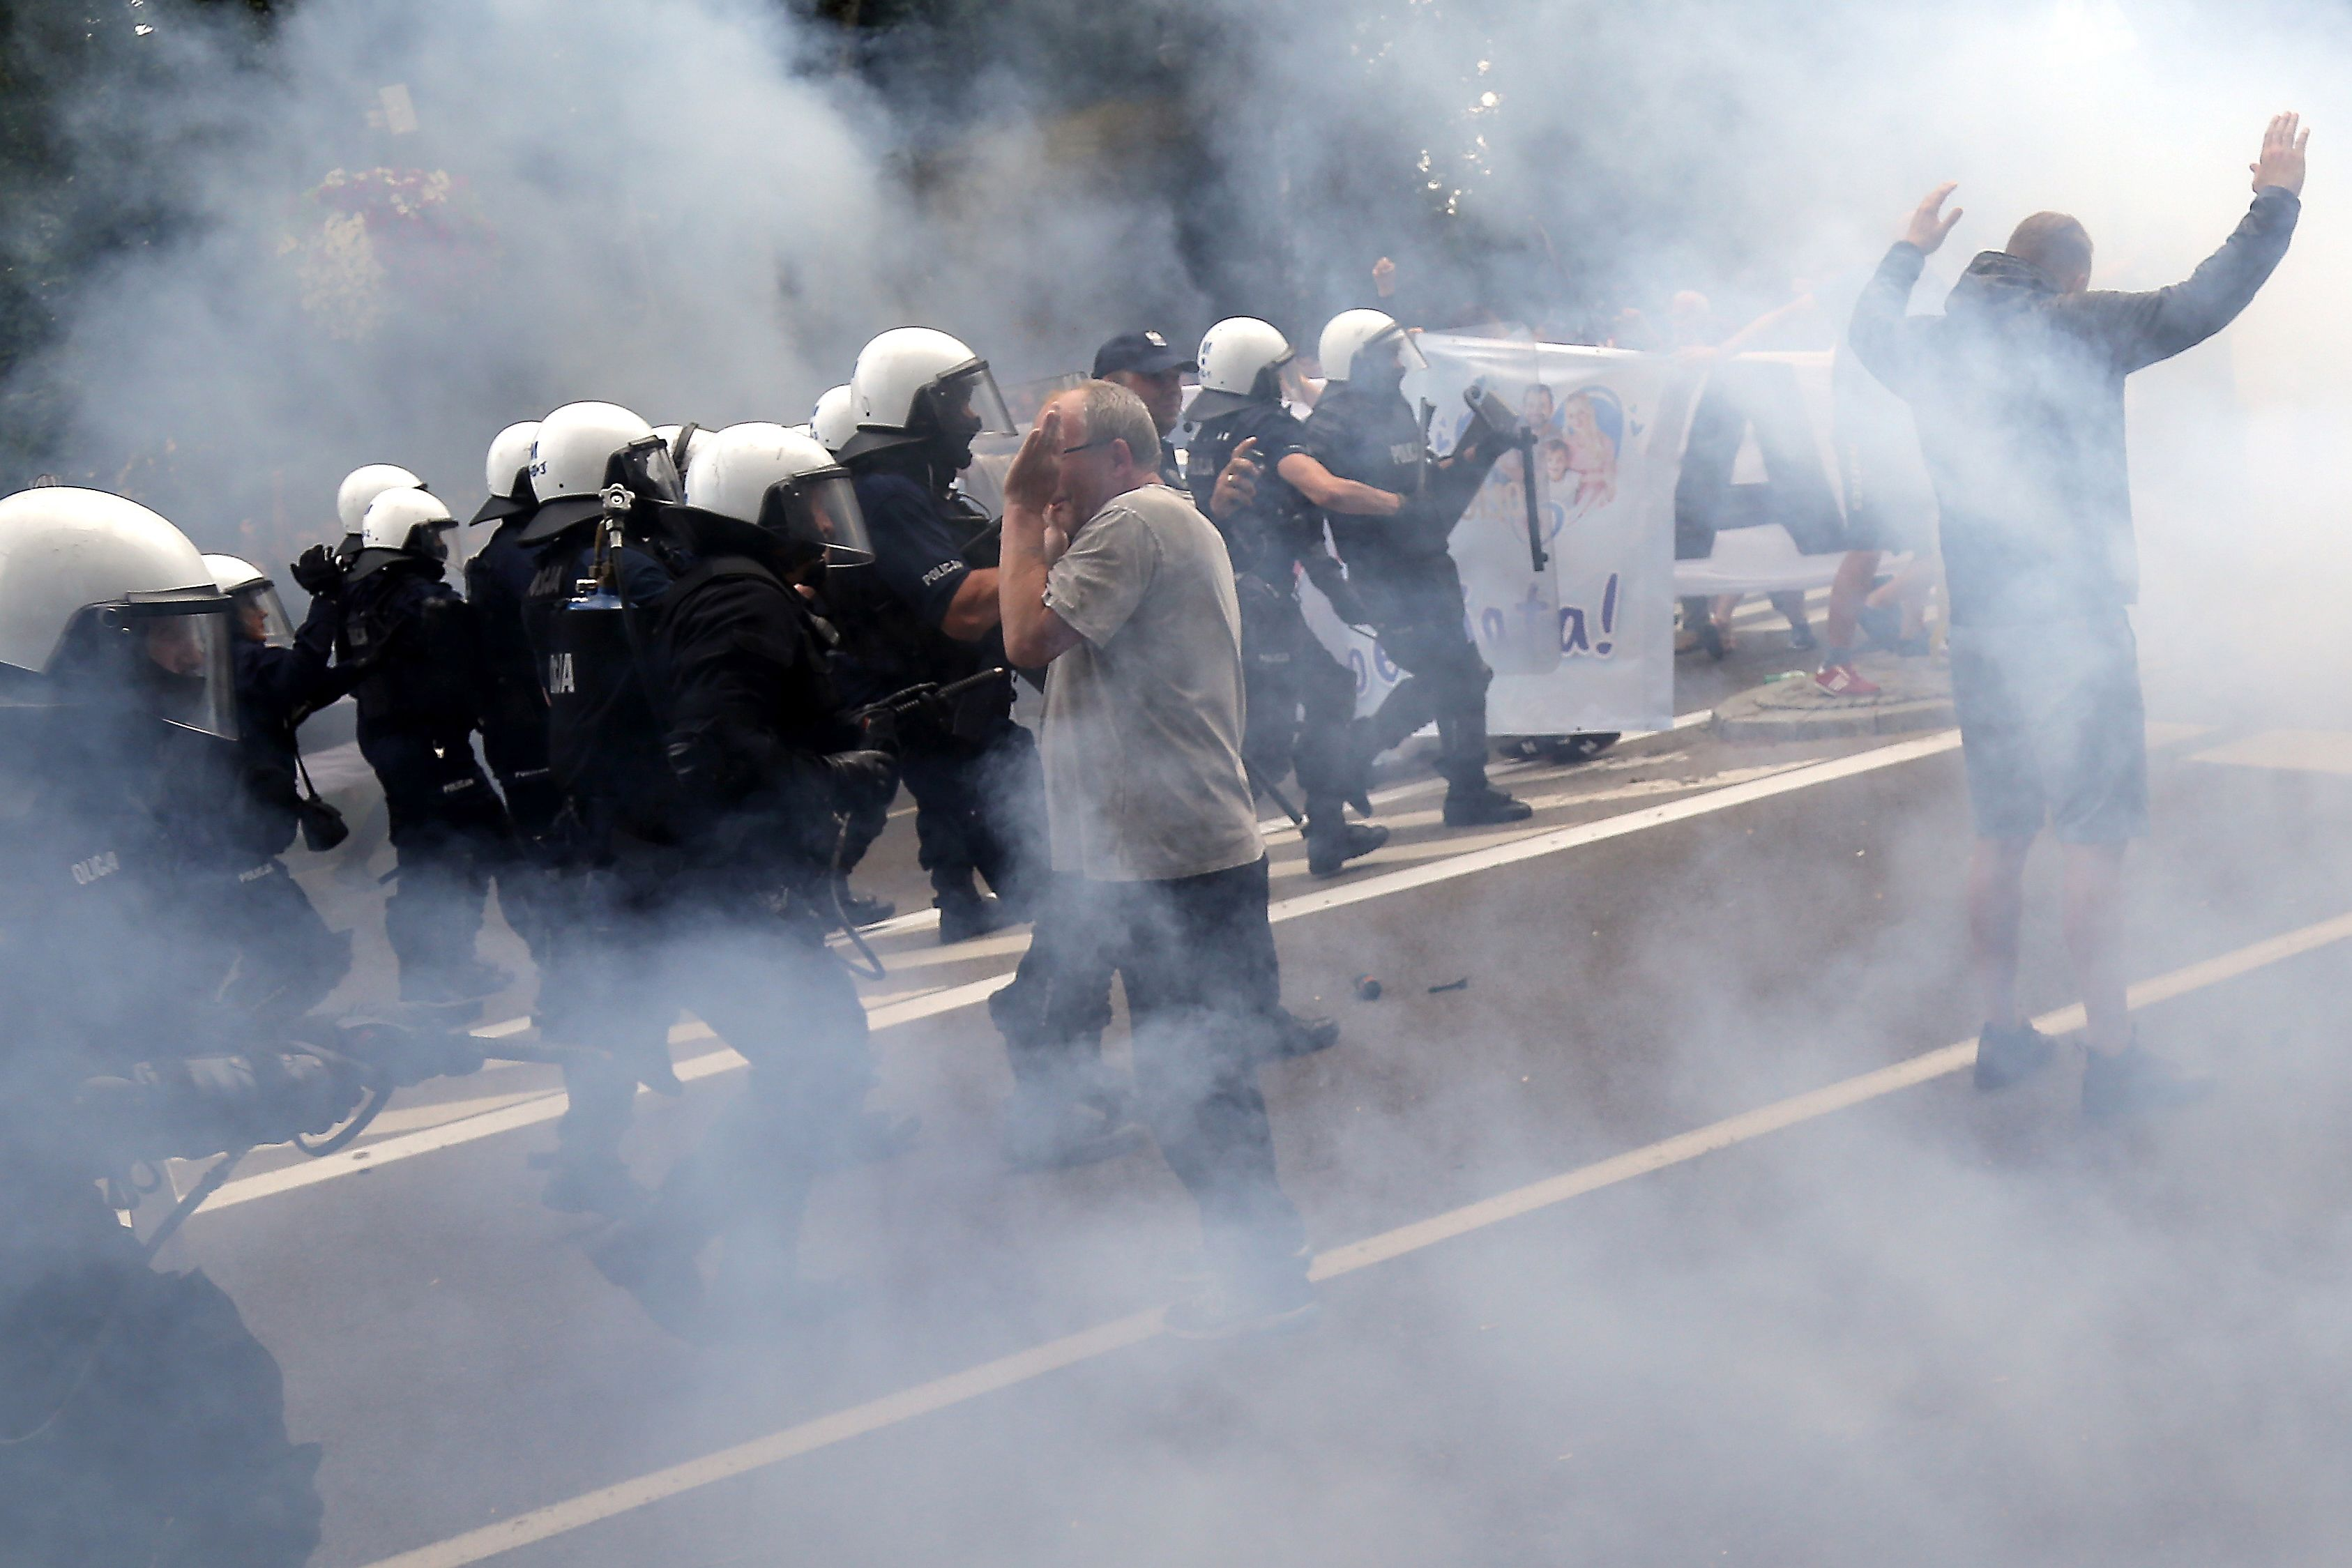 Riot police fire tear gas to disperse people, including ultra-nationalists, who attempted to block the first gay pride march on July 20, 2019 in Bialystok, eastern Poland